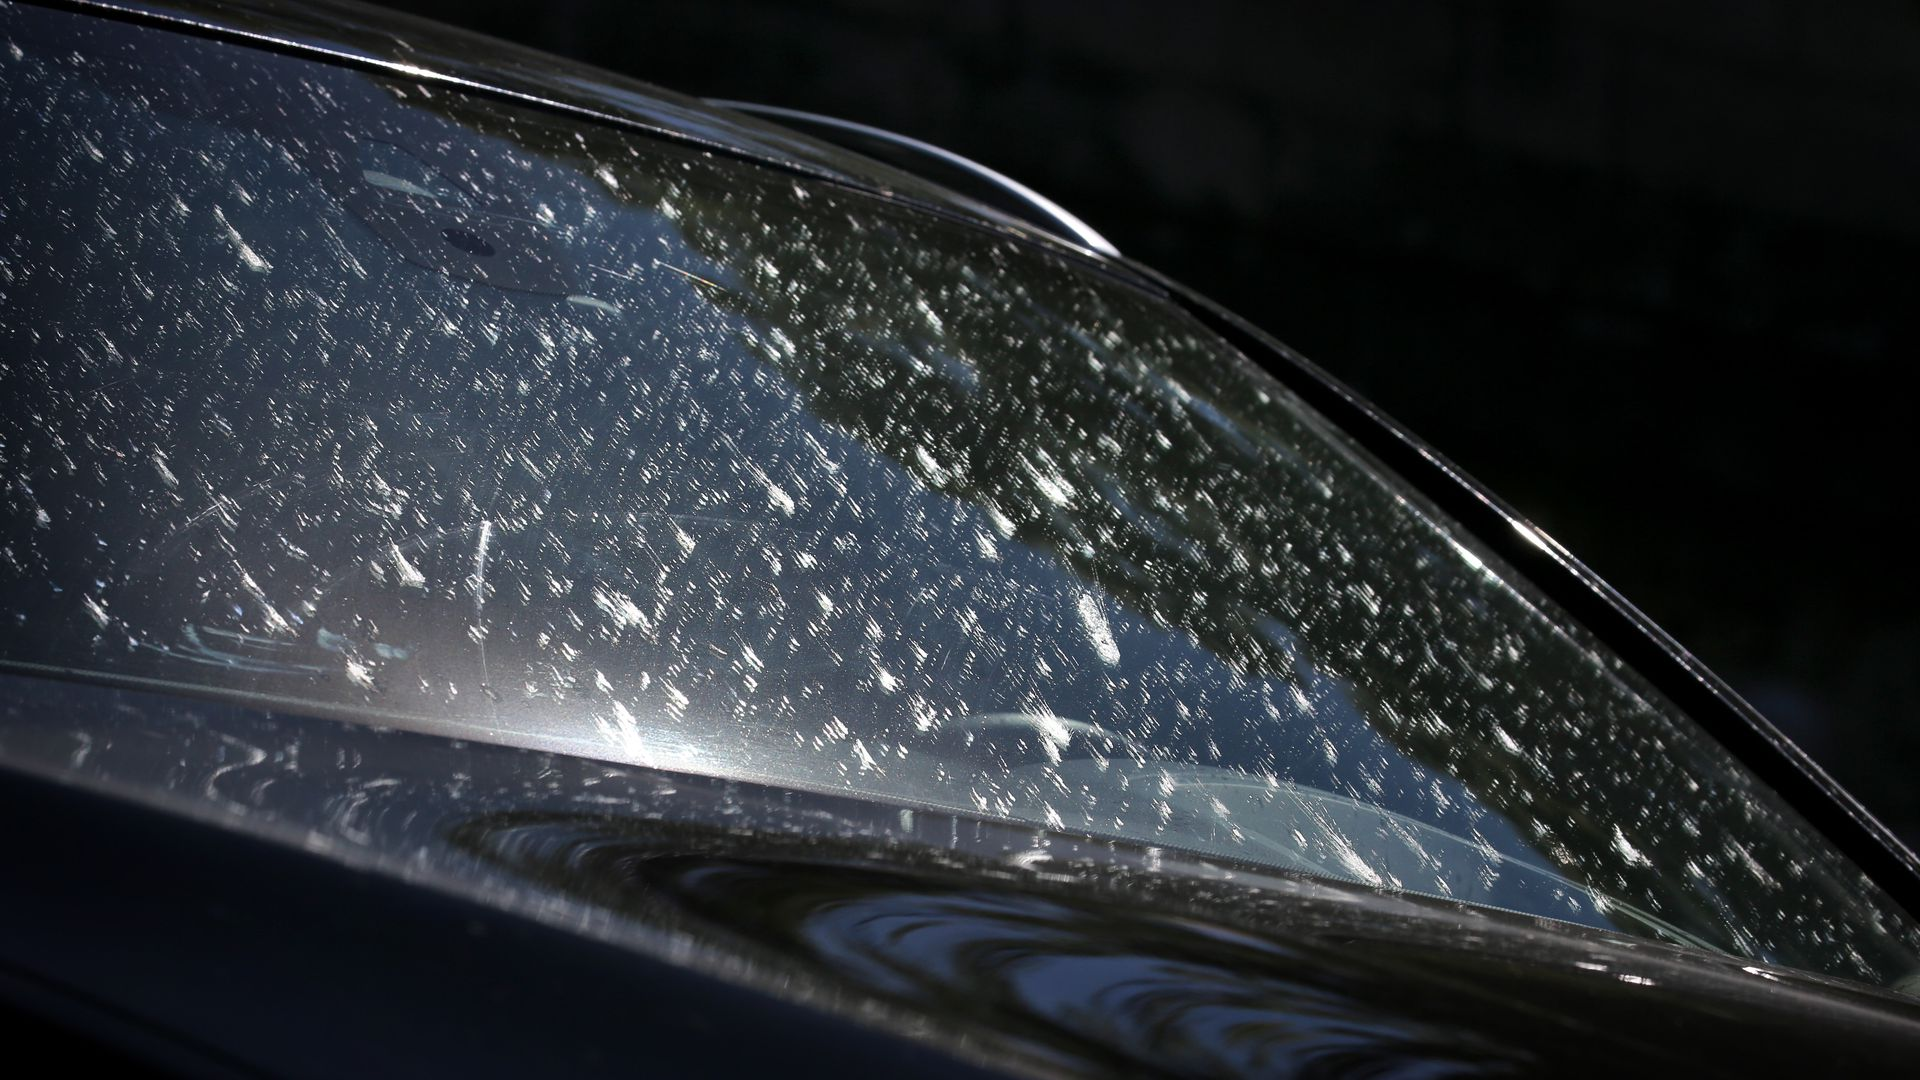 A car windshield covered in dead bugs